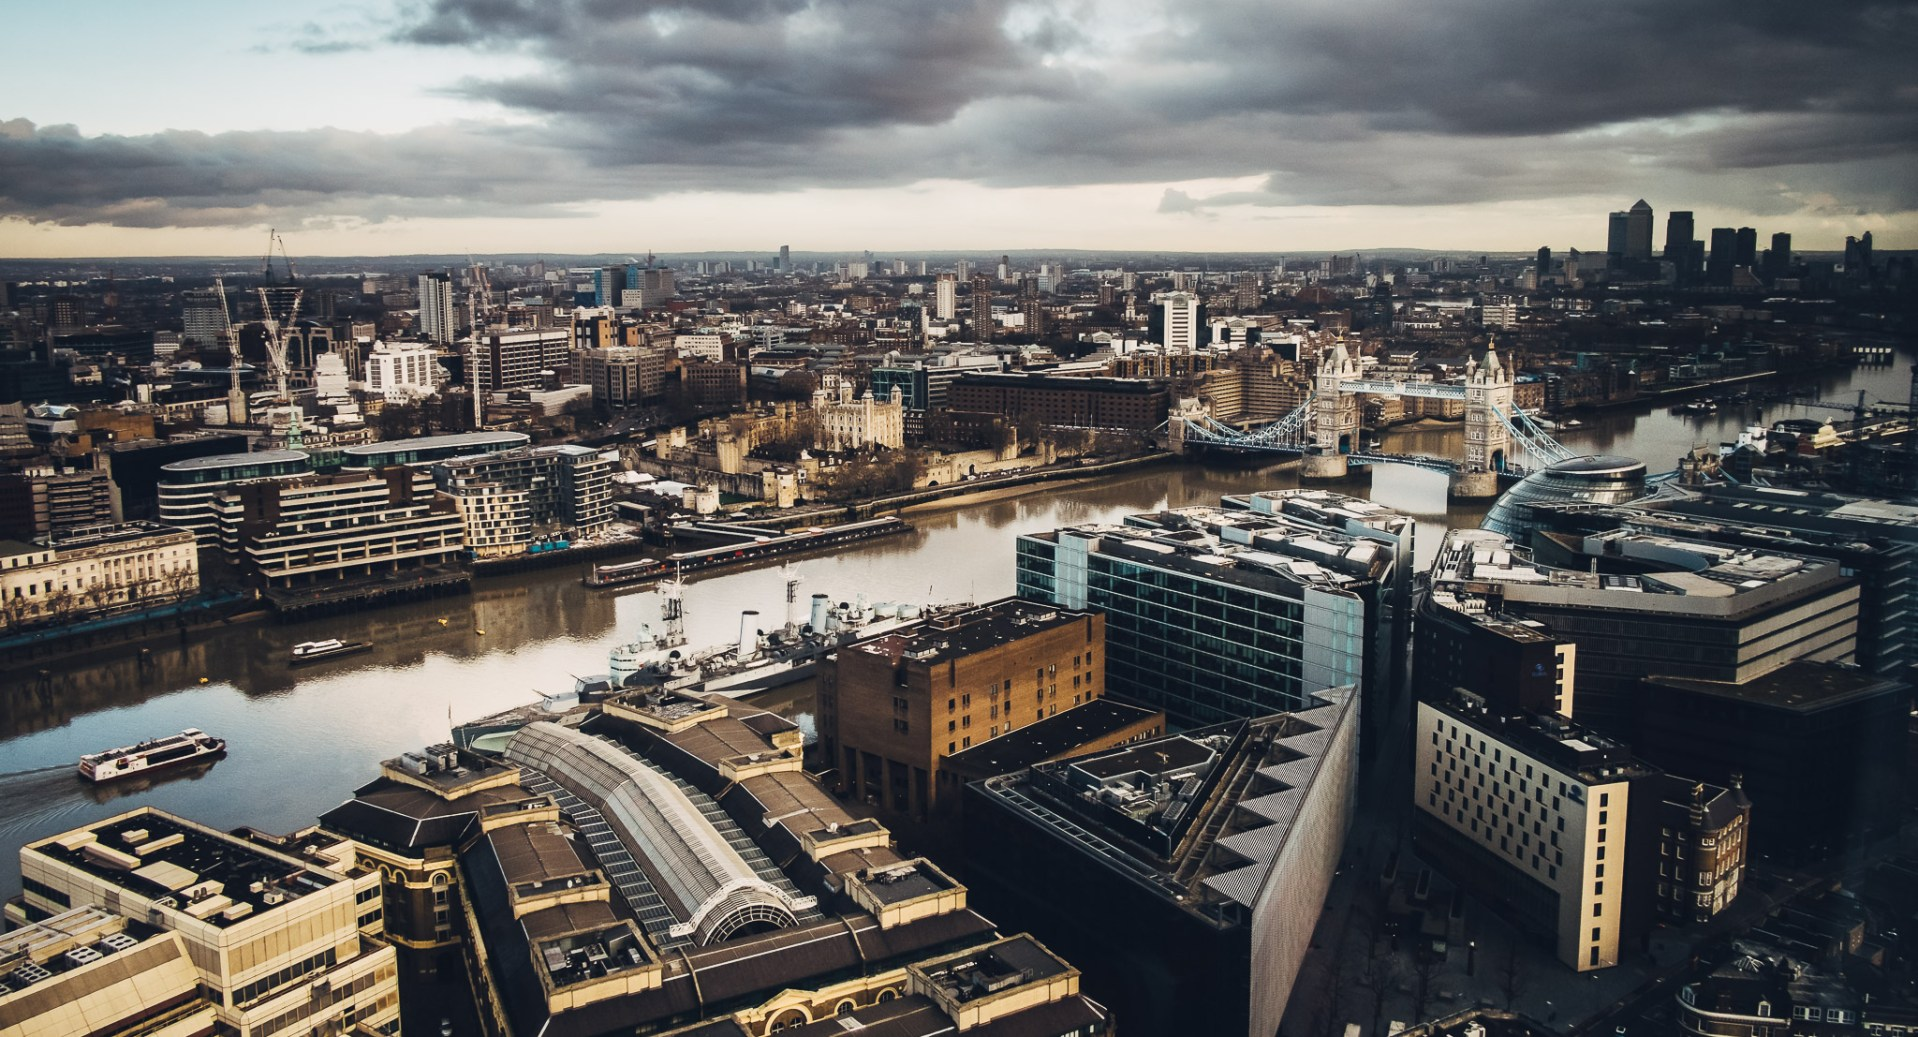 Looking down to Tower Bridge and the River Thames, from the 33rd floor of The Shard